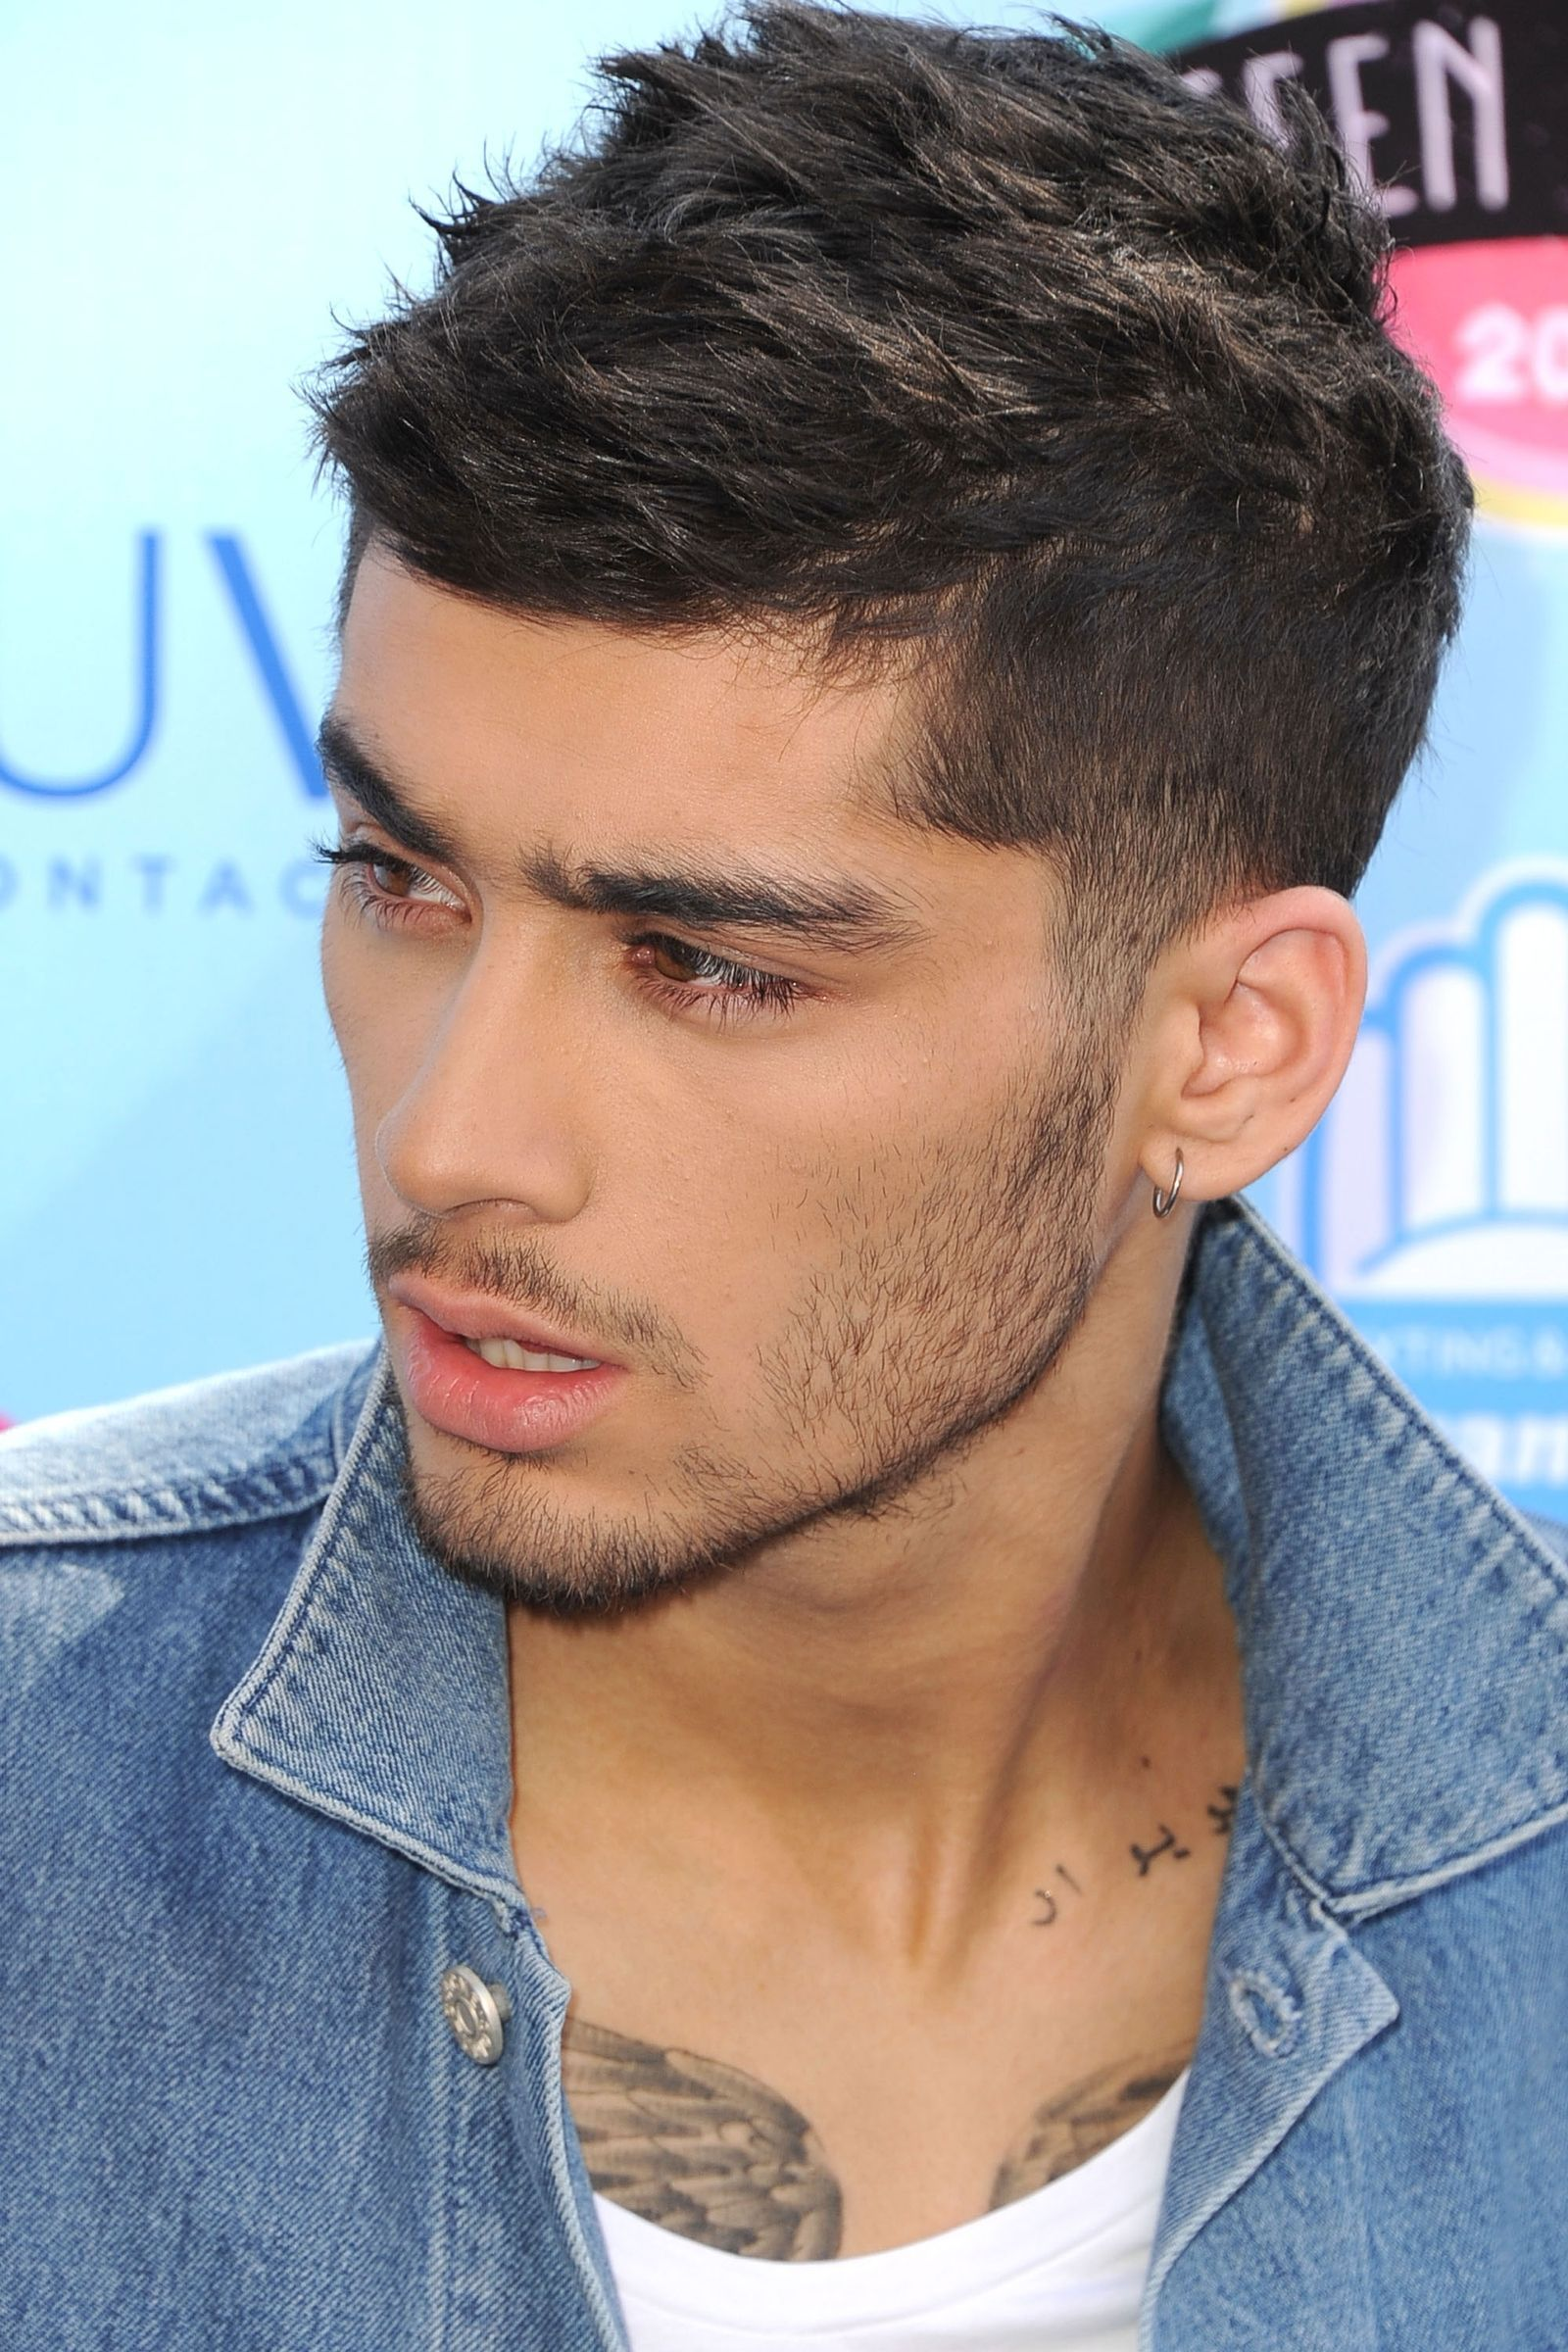 Photos Of Zayn Malik To Look At While You Ugly Cry About Him - Zayn malik hairstyle facebook